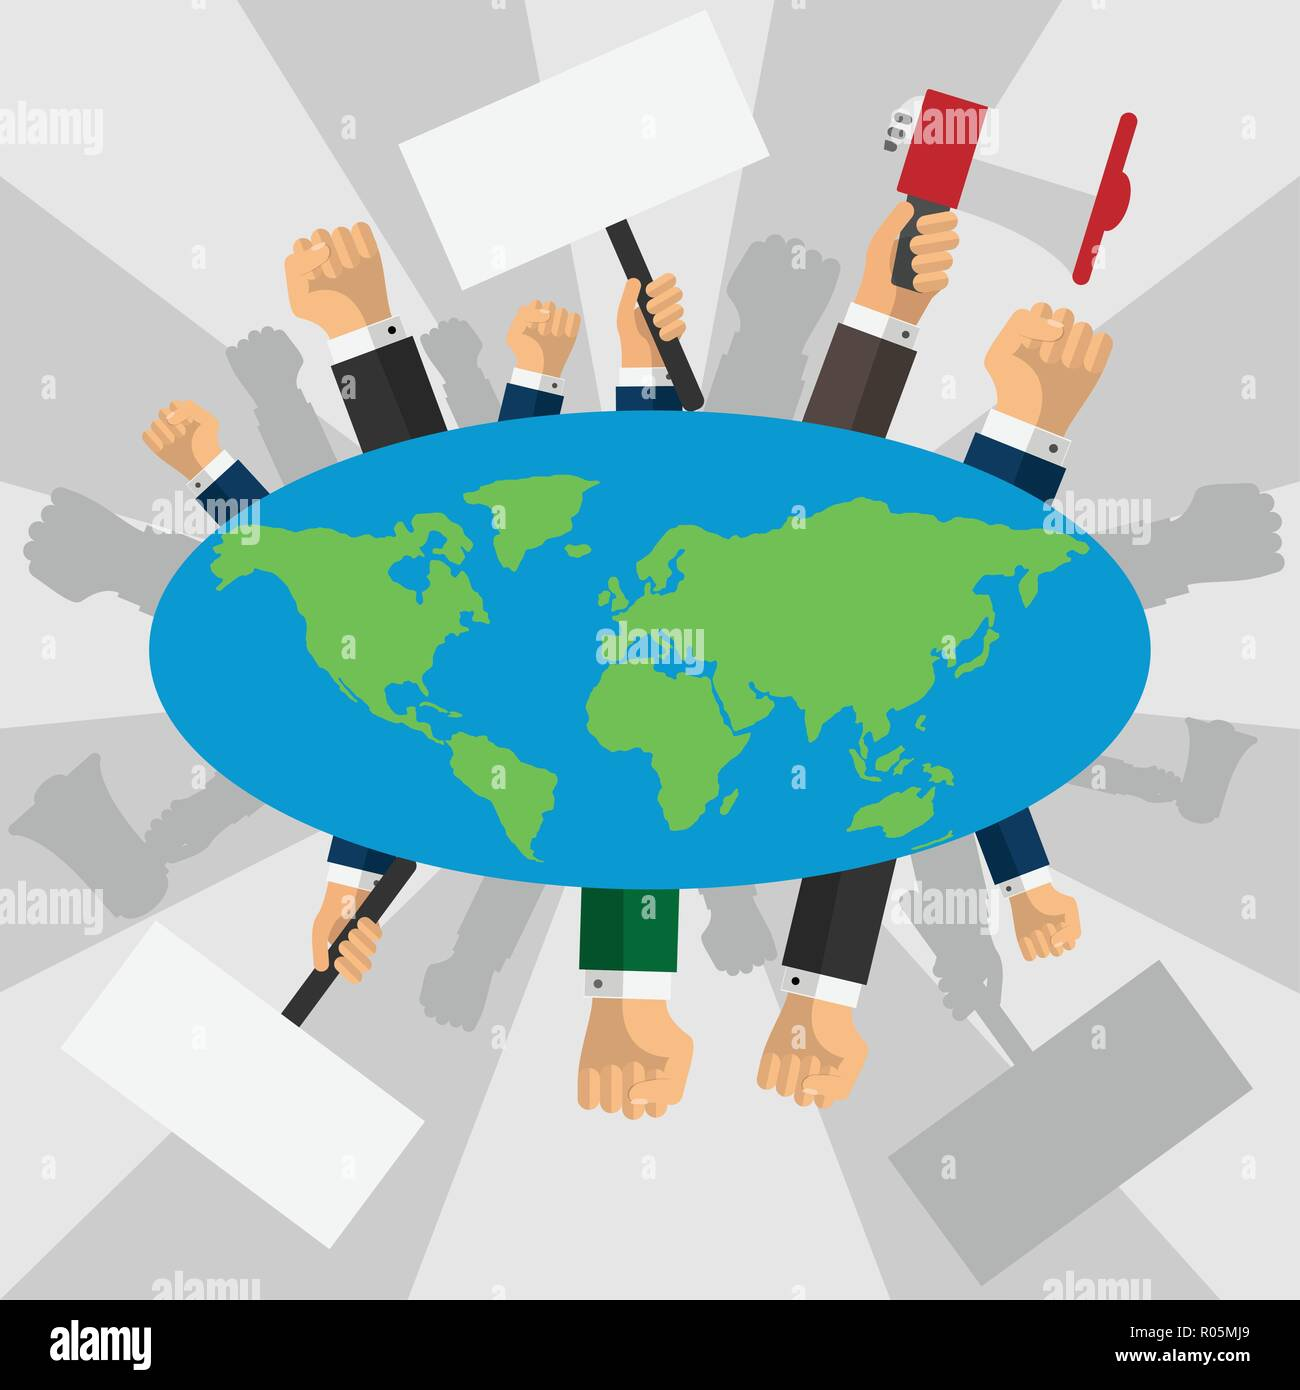 Human hands raised with banners around the earth globe - Stock Vector